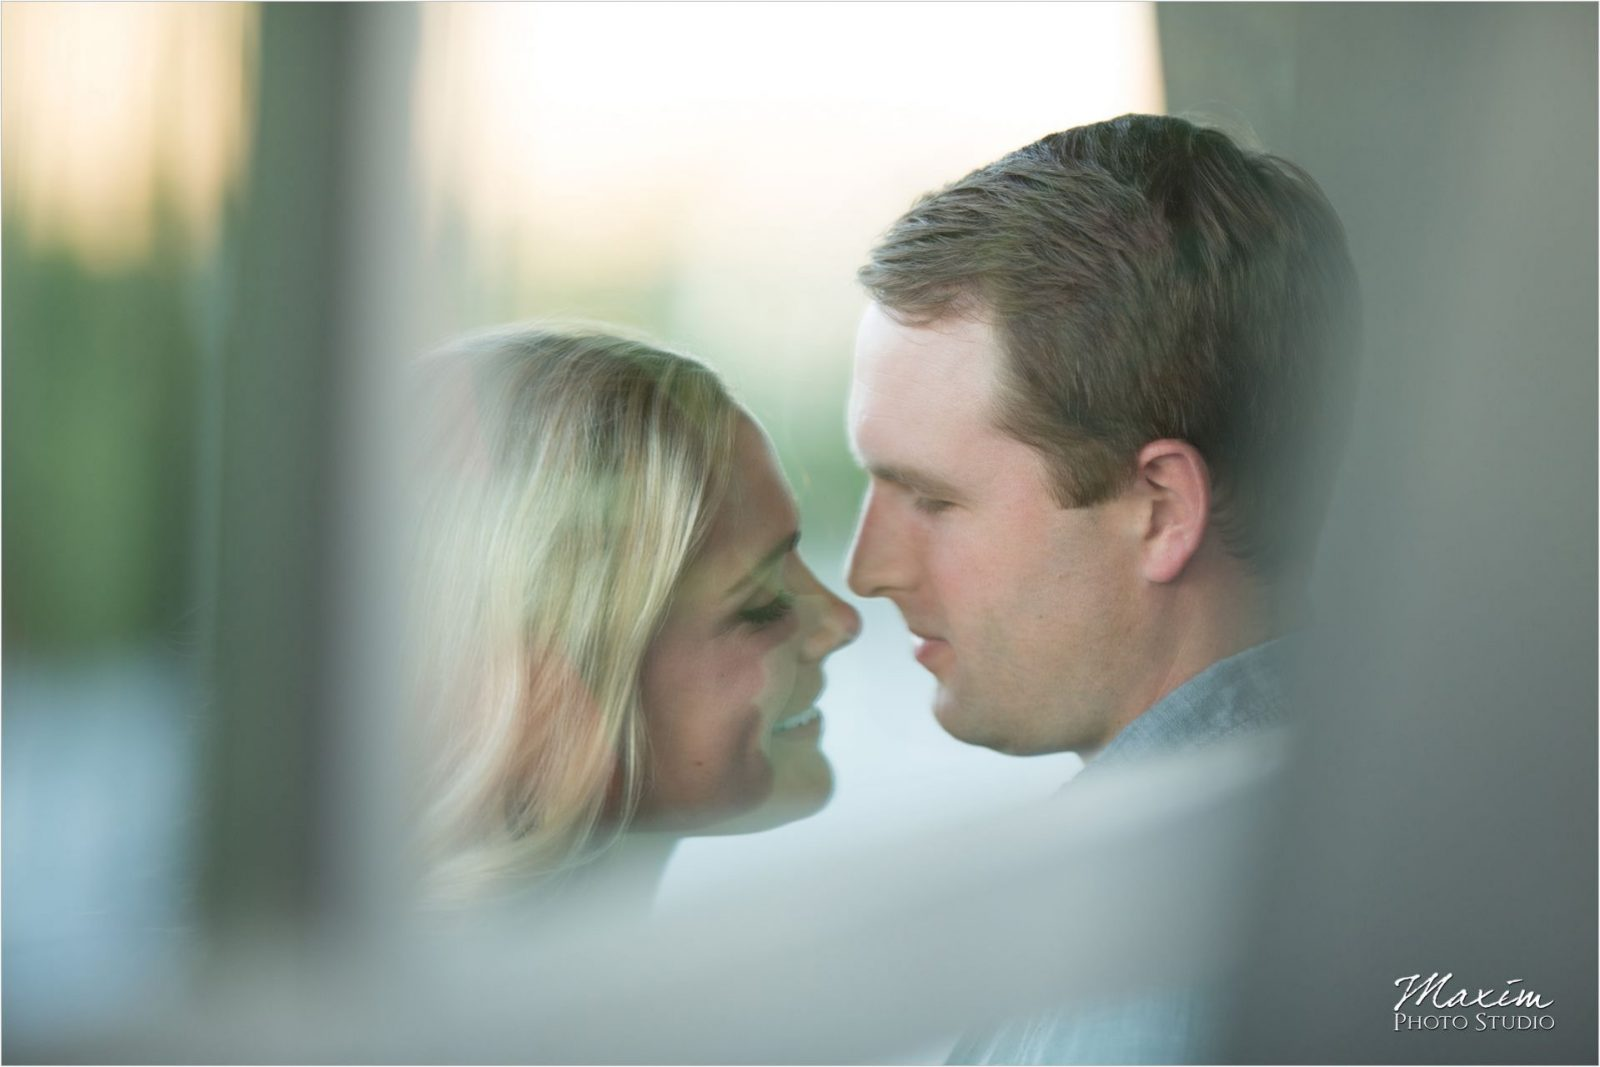 Moerlein House window reflection Cincinnati Engagement Photography